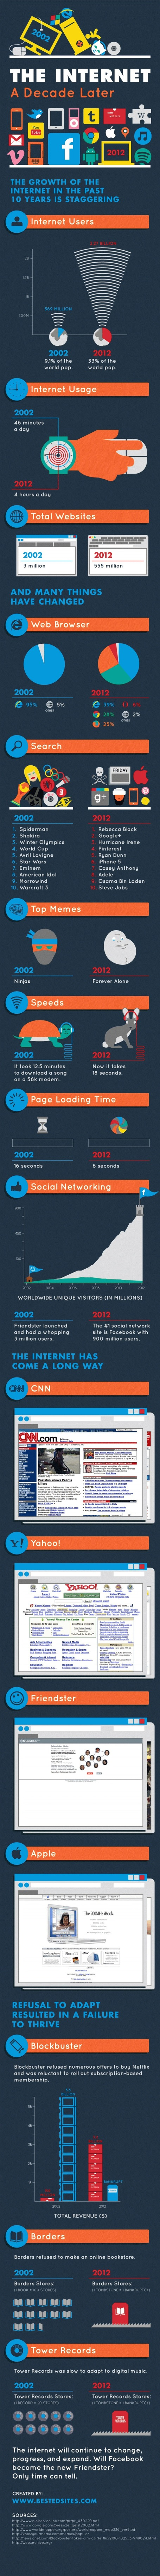 "A Decade of the Internet | L'impresa ""mobile"" 